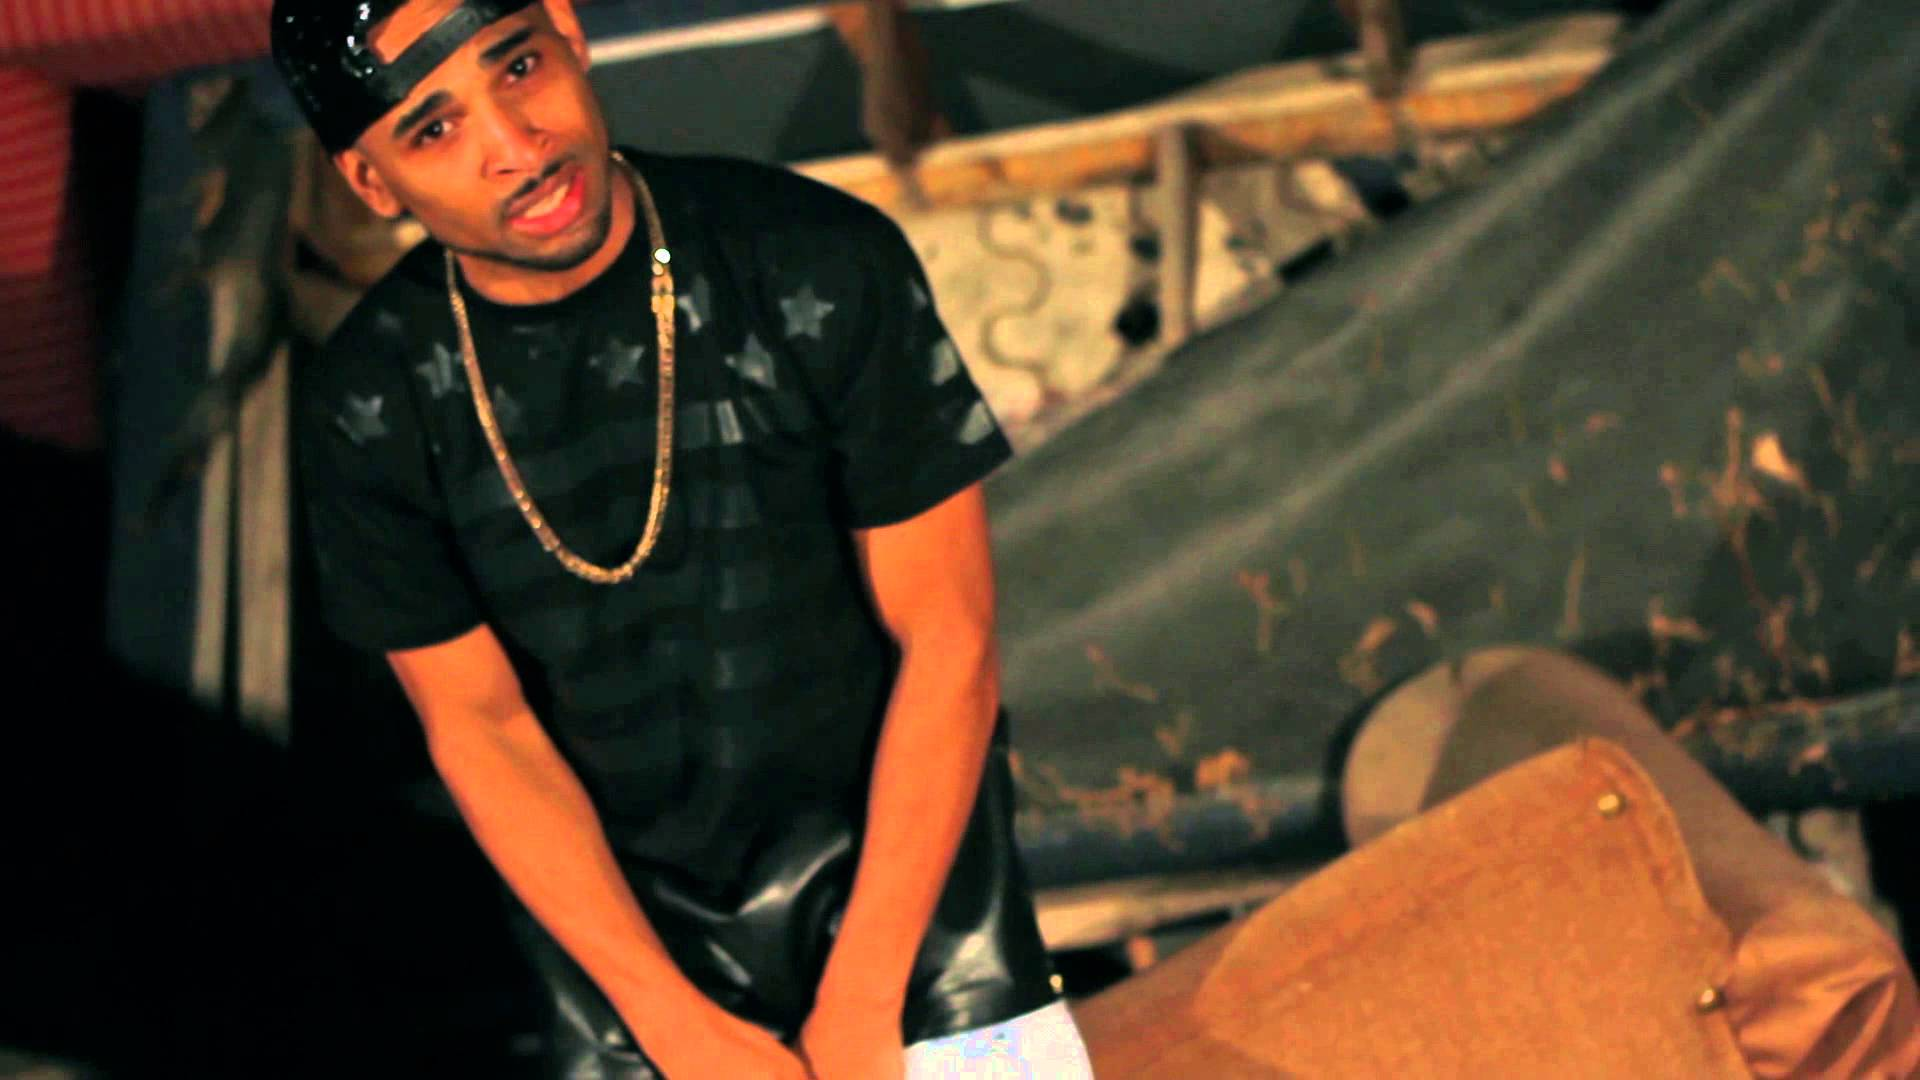 Tone Yates – A Little More (Music Video)